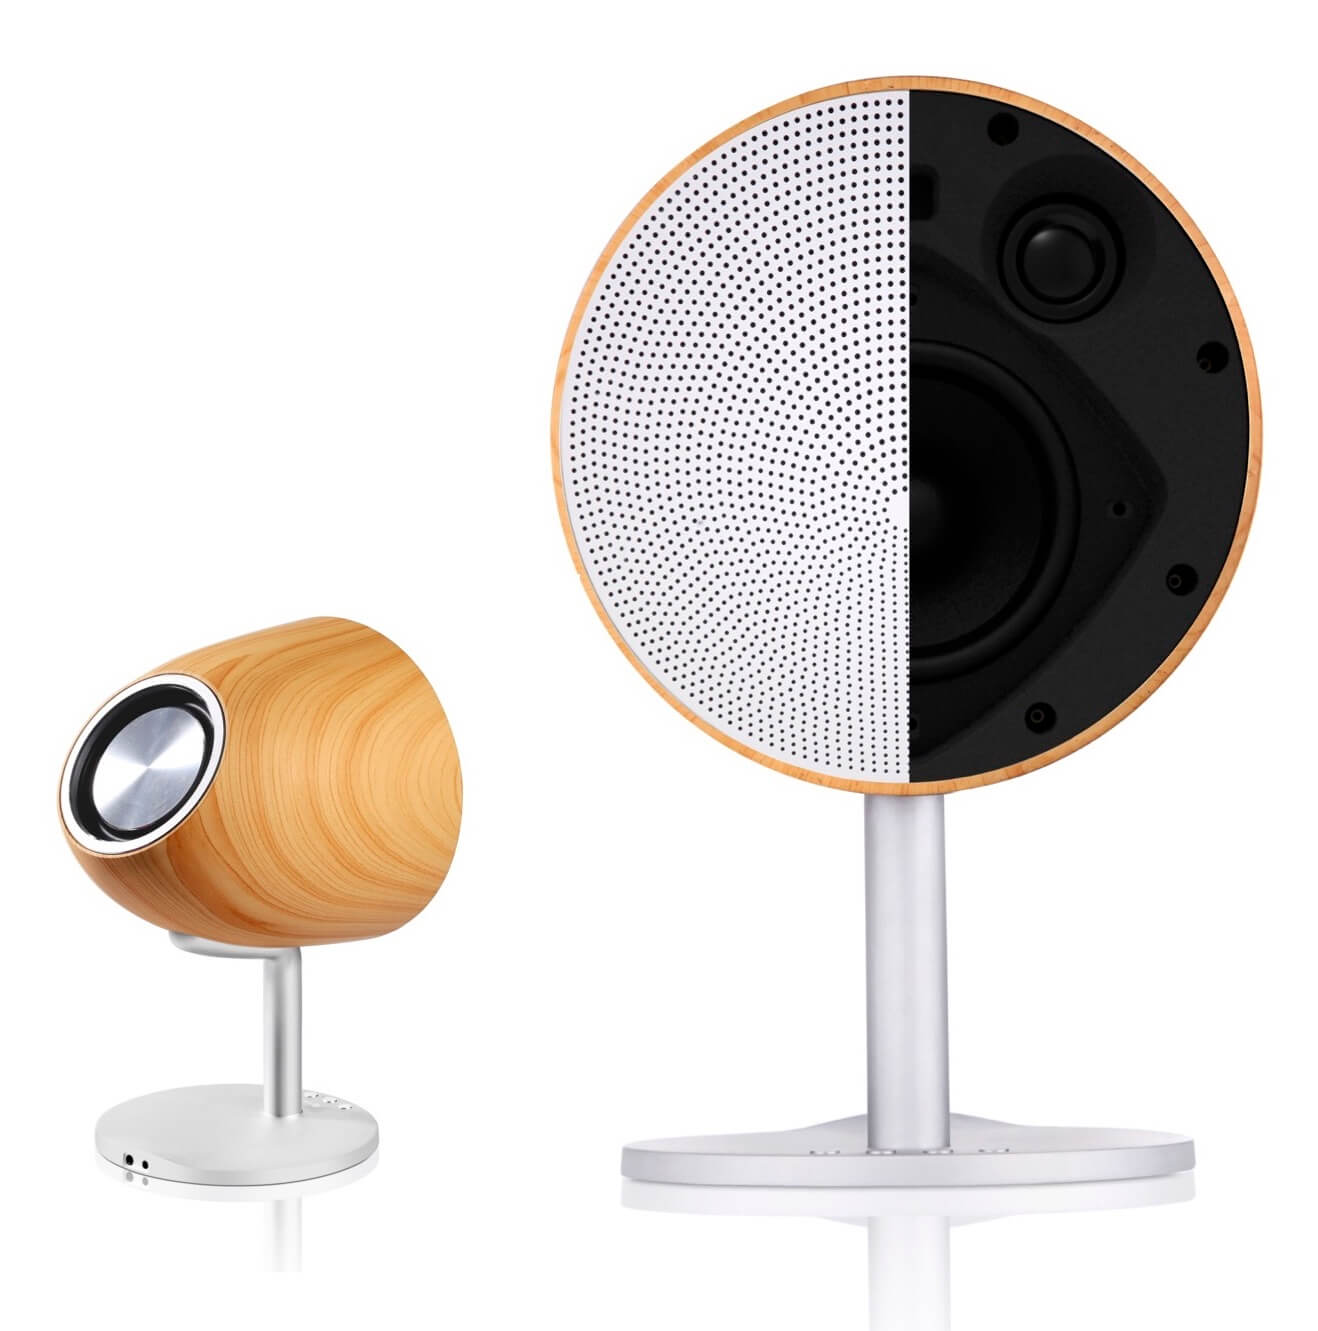 TecTecTec Olisten 3 Stylish WiFi Speaker